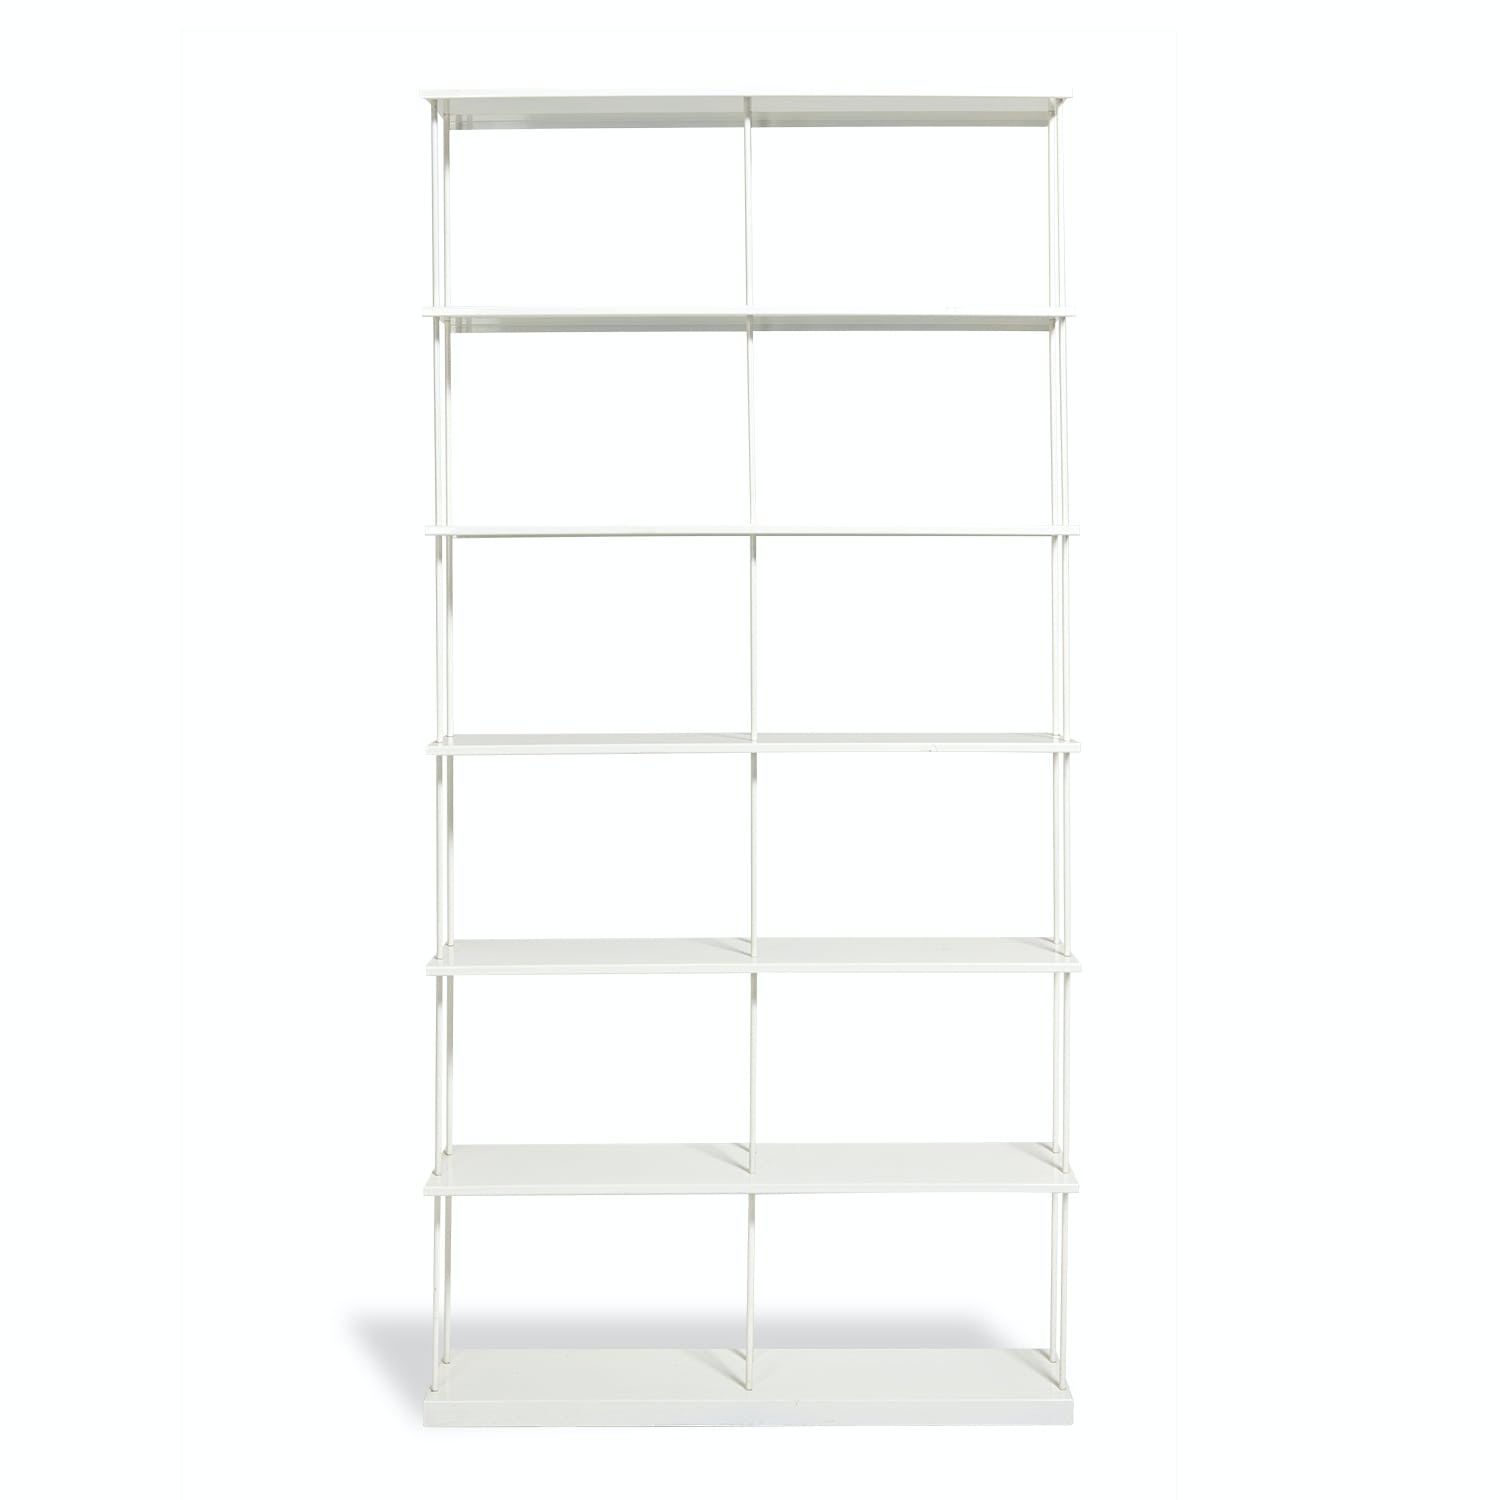 Invisi Shelving Unit